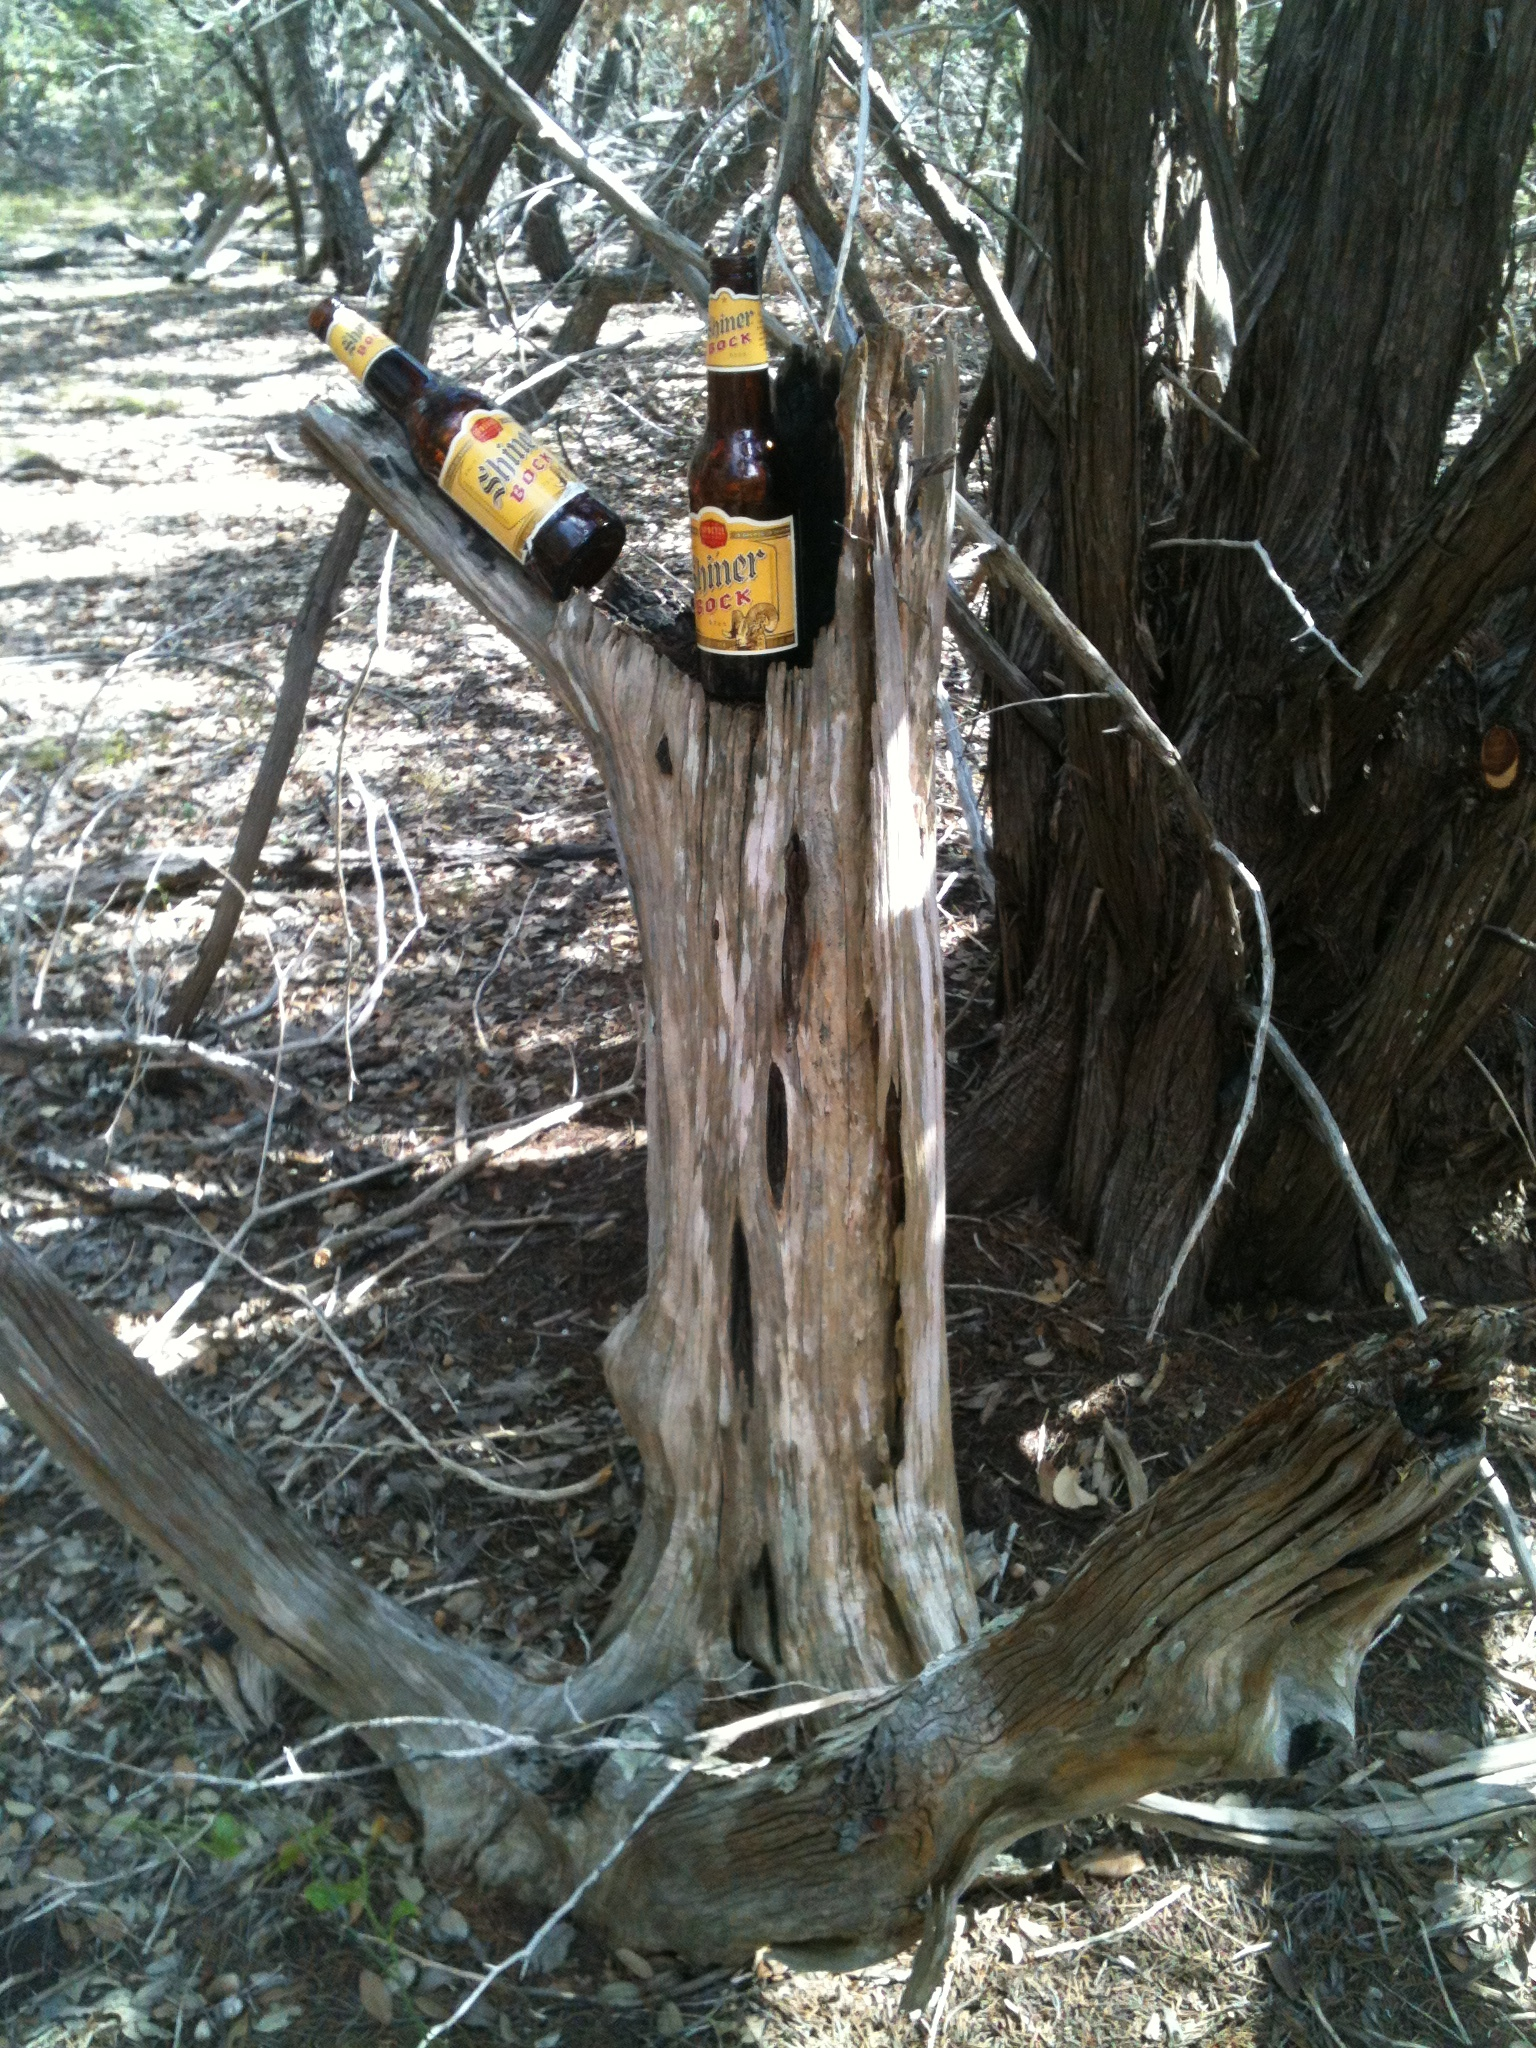 Finding my way-beer markers - The beer markers are still there today